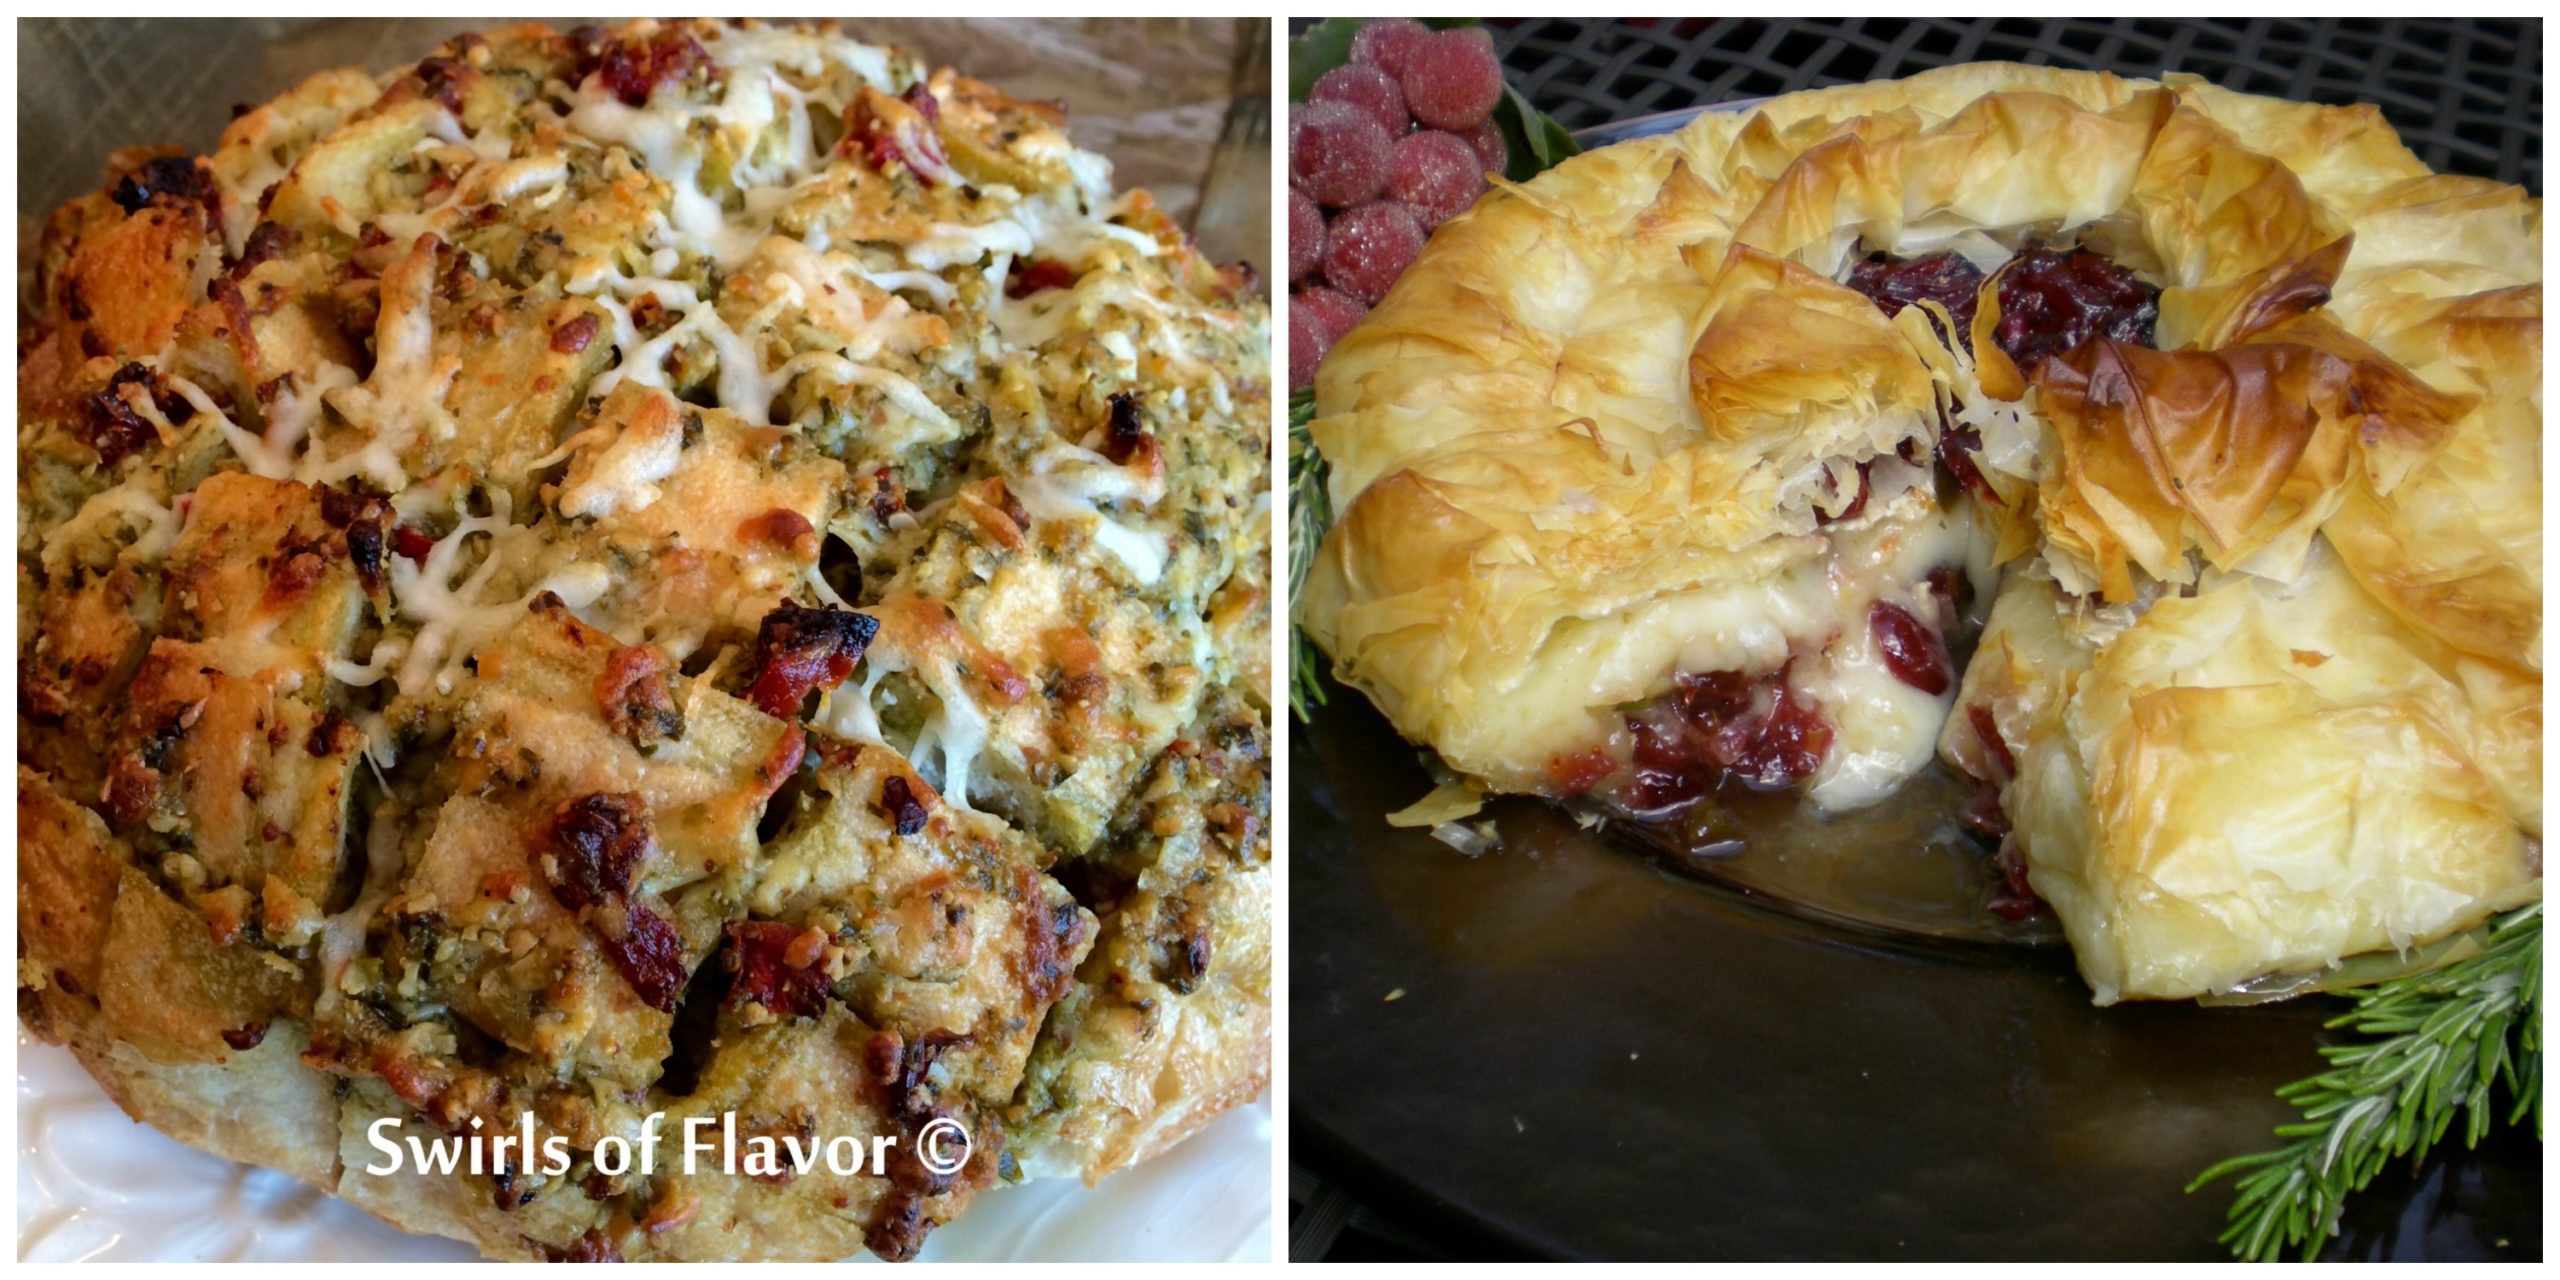 Pull Apart Pesto Bread and Cranberry Baked Brie